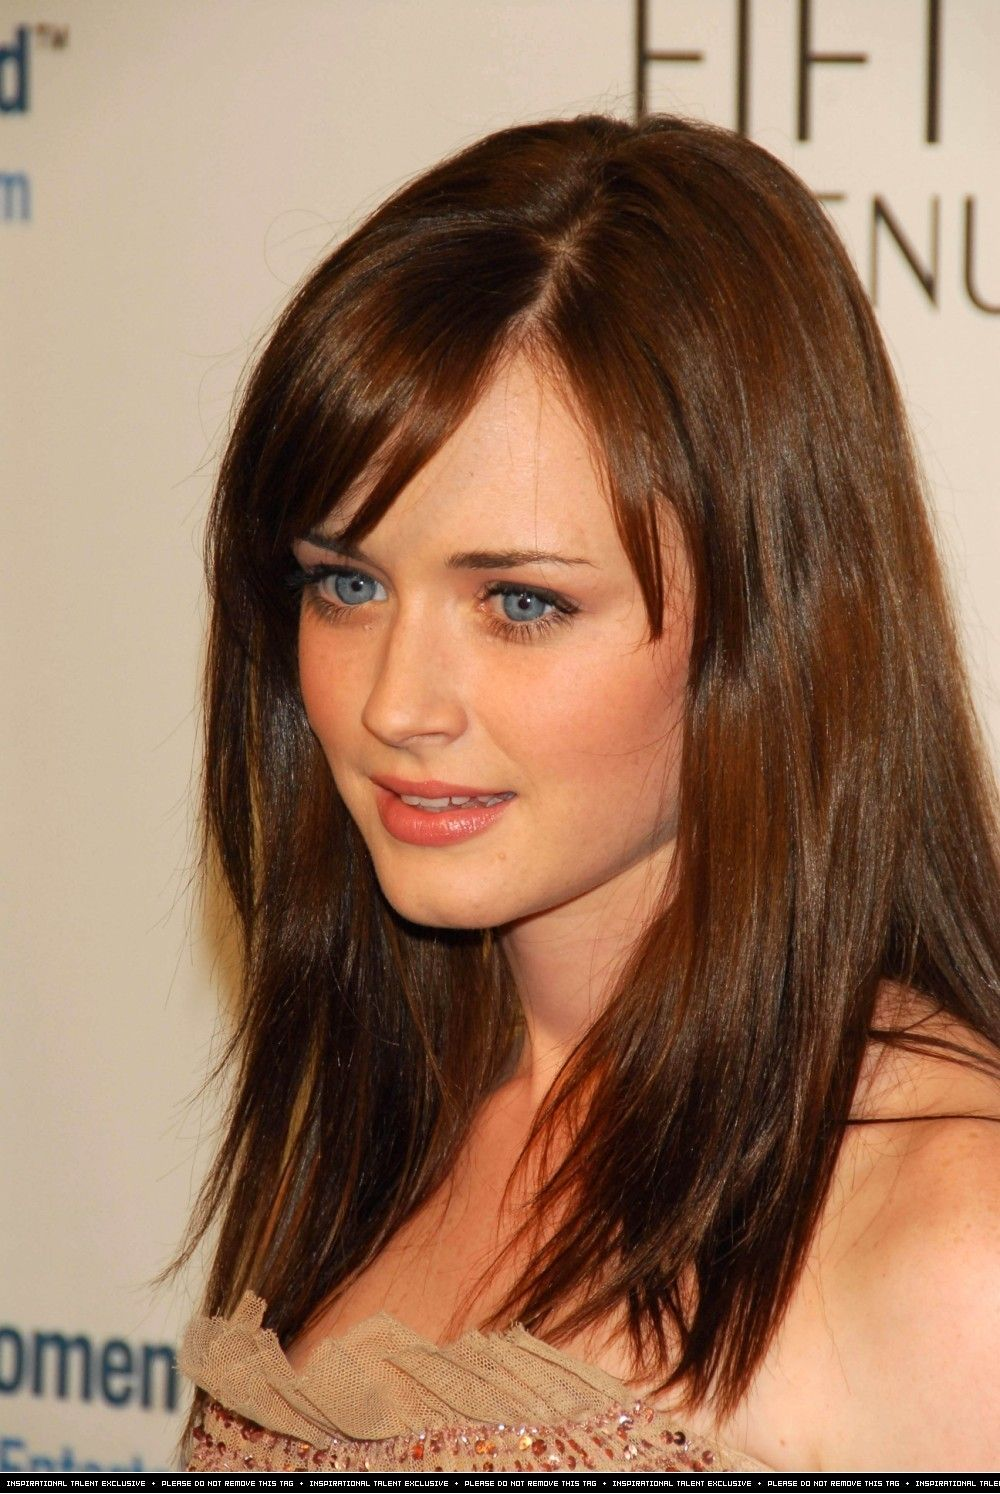 Alexis Bledel Photo Pretty Alexis Rory Gilmore Hair Alexis Bledel Reese Witherspoon Hair